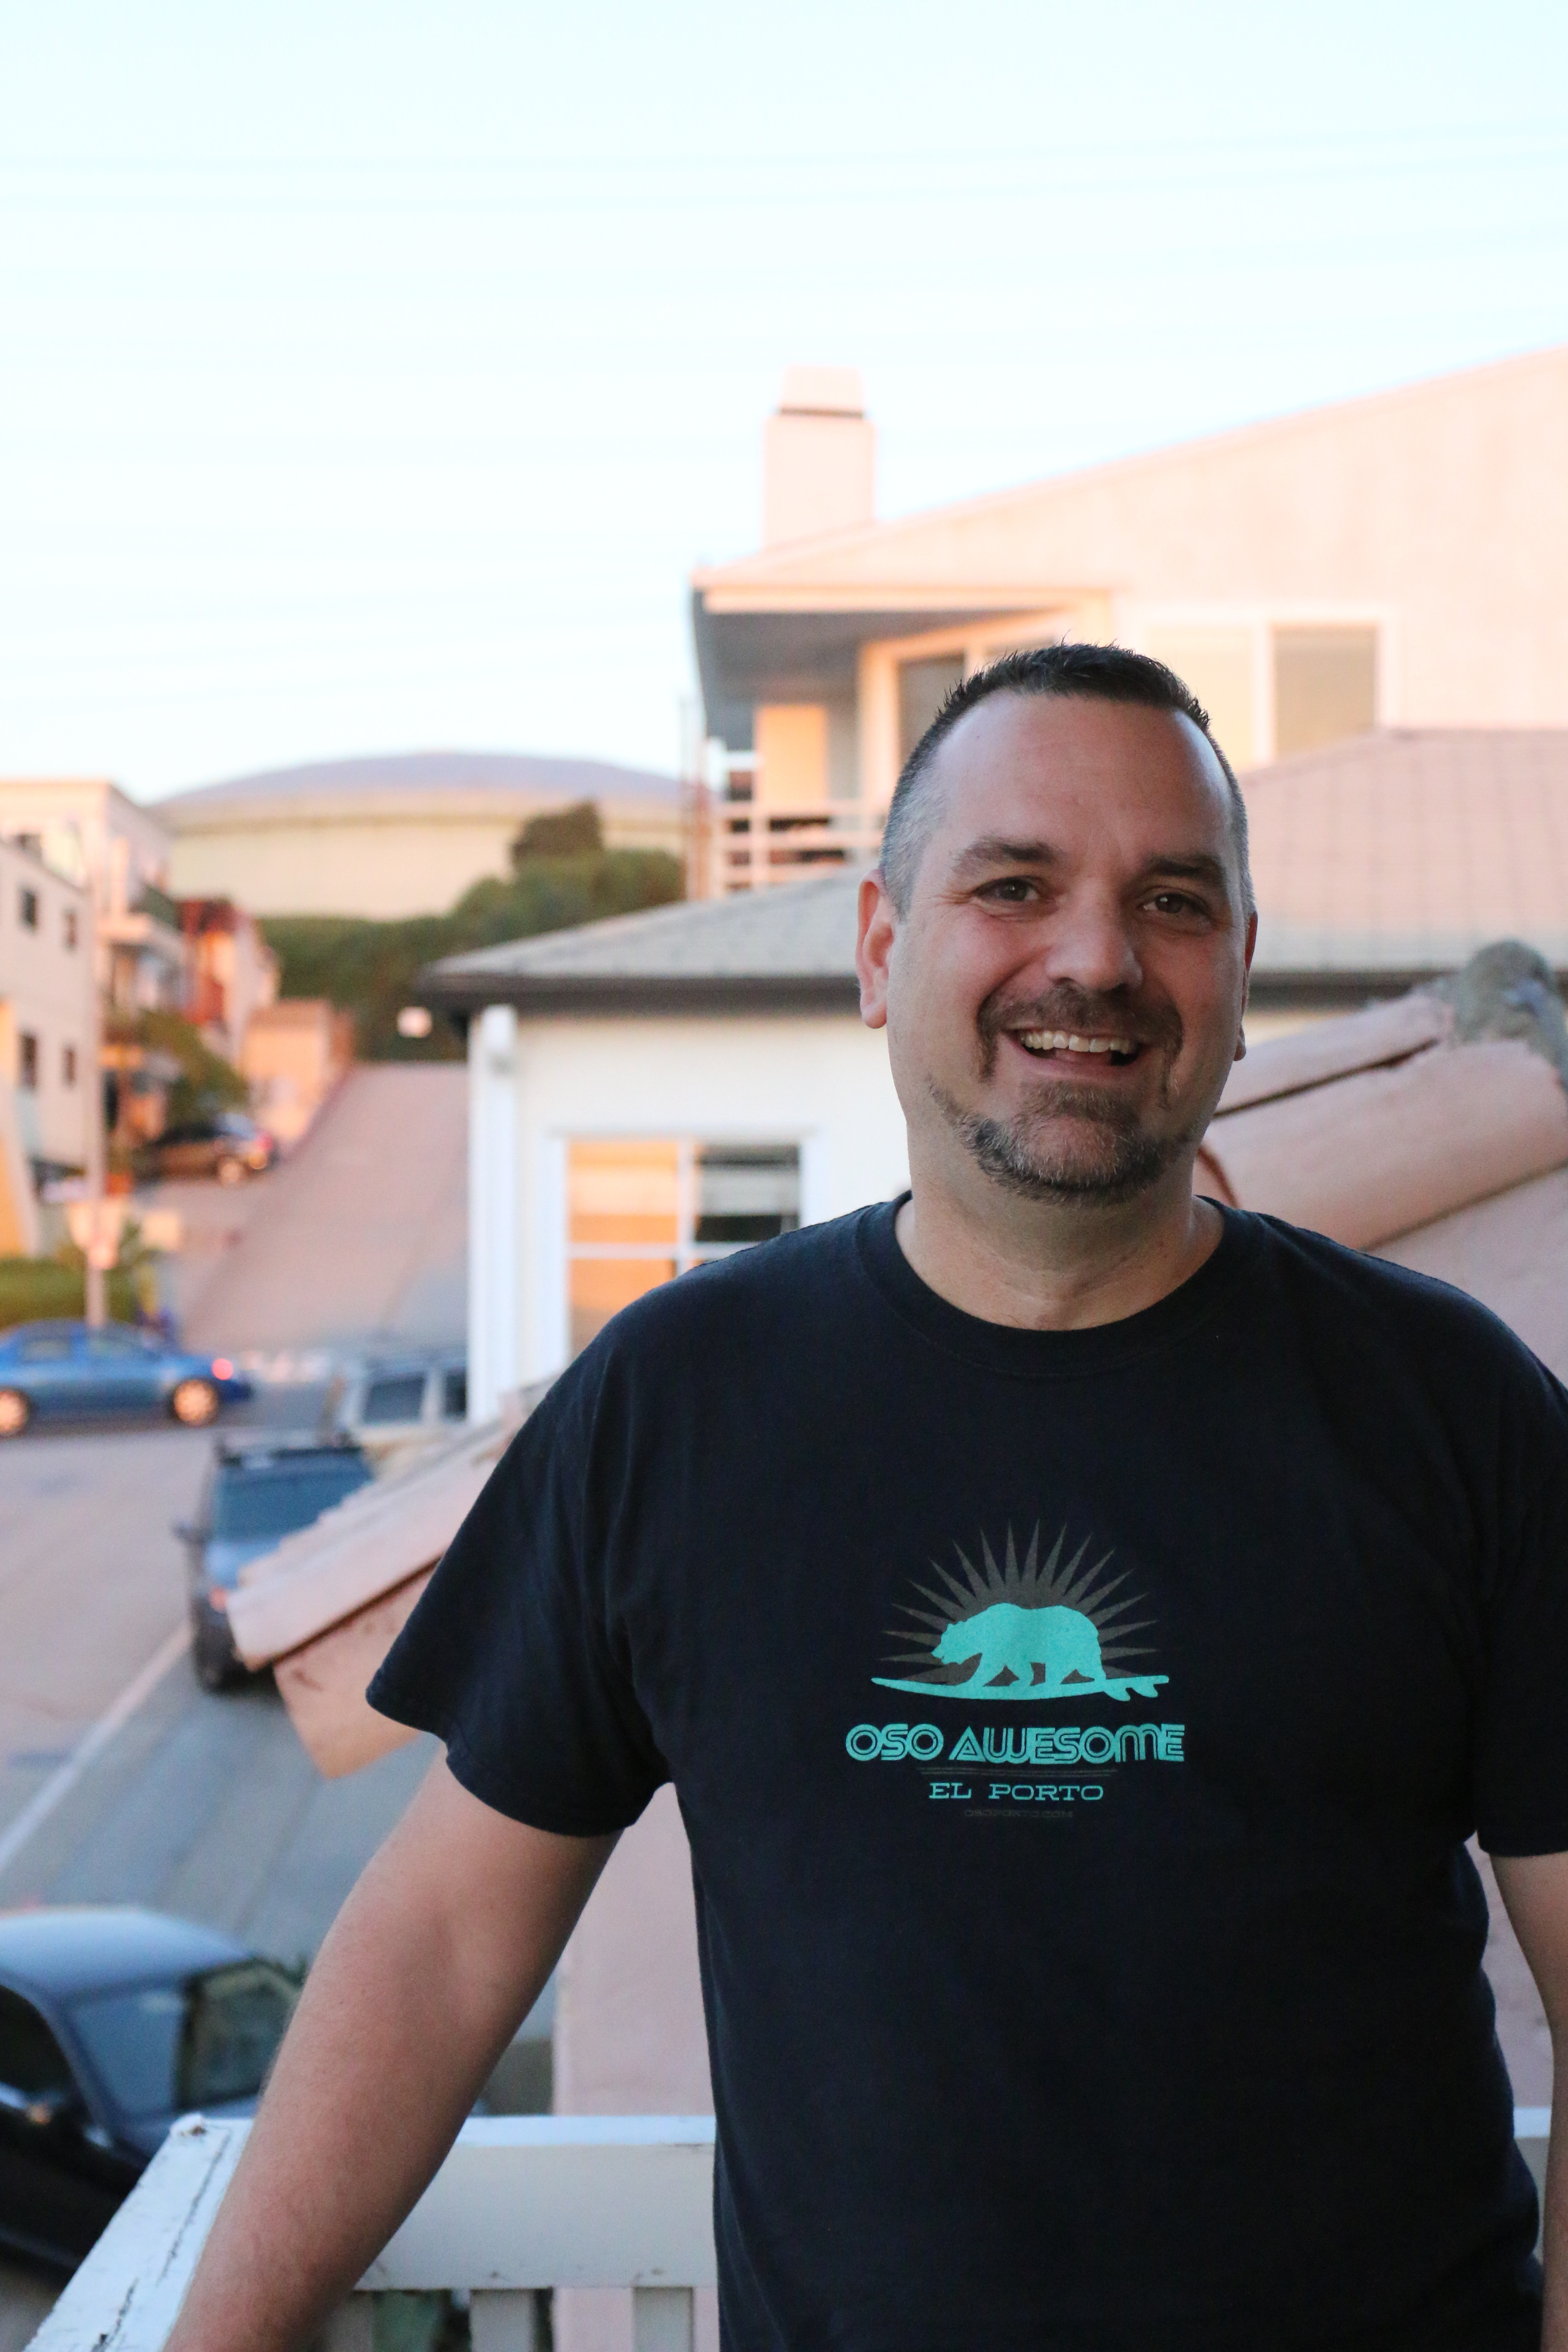 Jon Berry outside his El Porto apartment, wearing a t-shirt from his brand Osoporto. Photo by Caroline Anderson